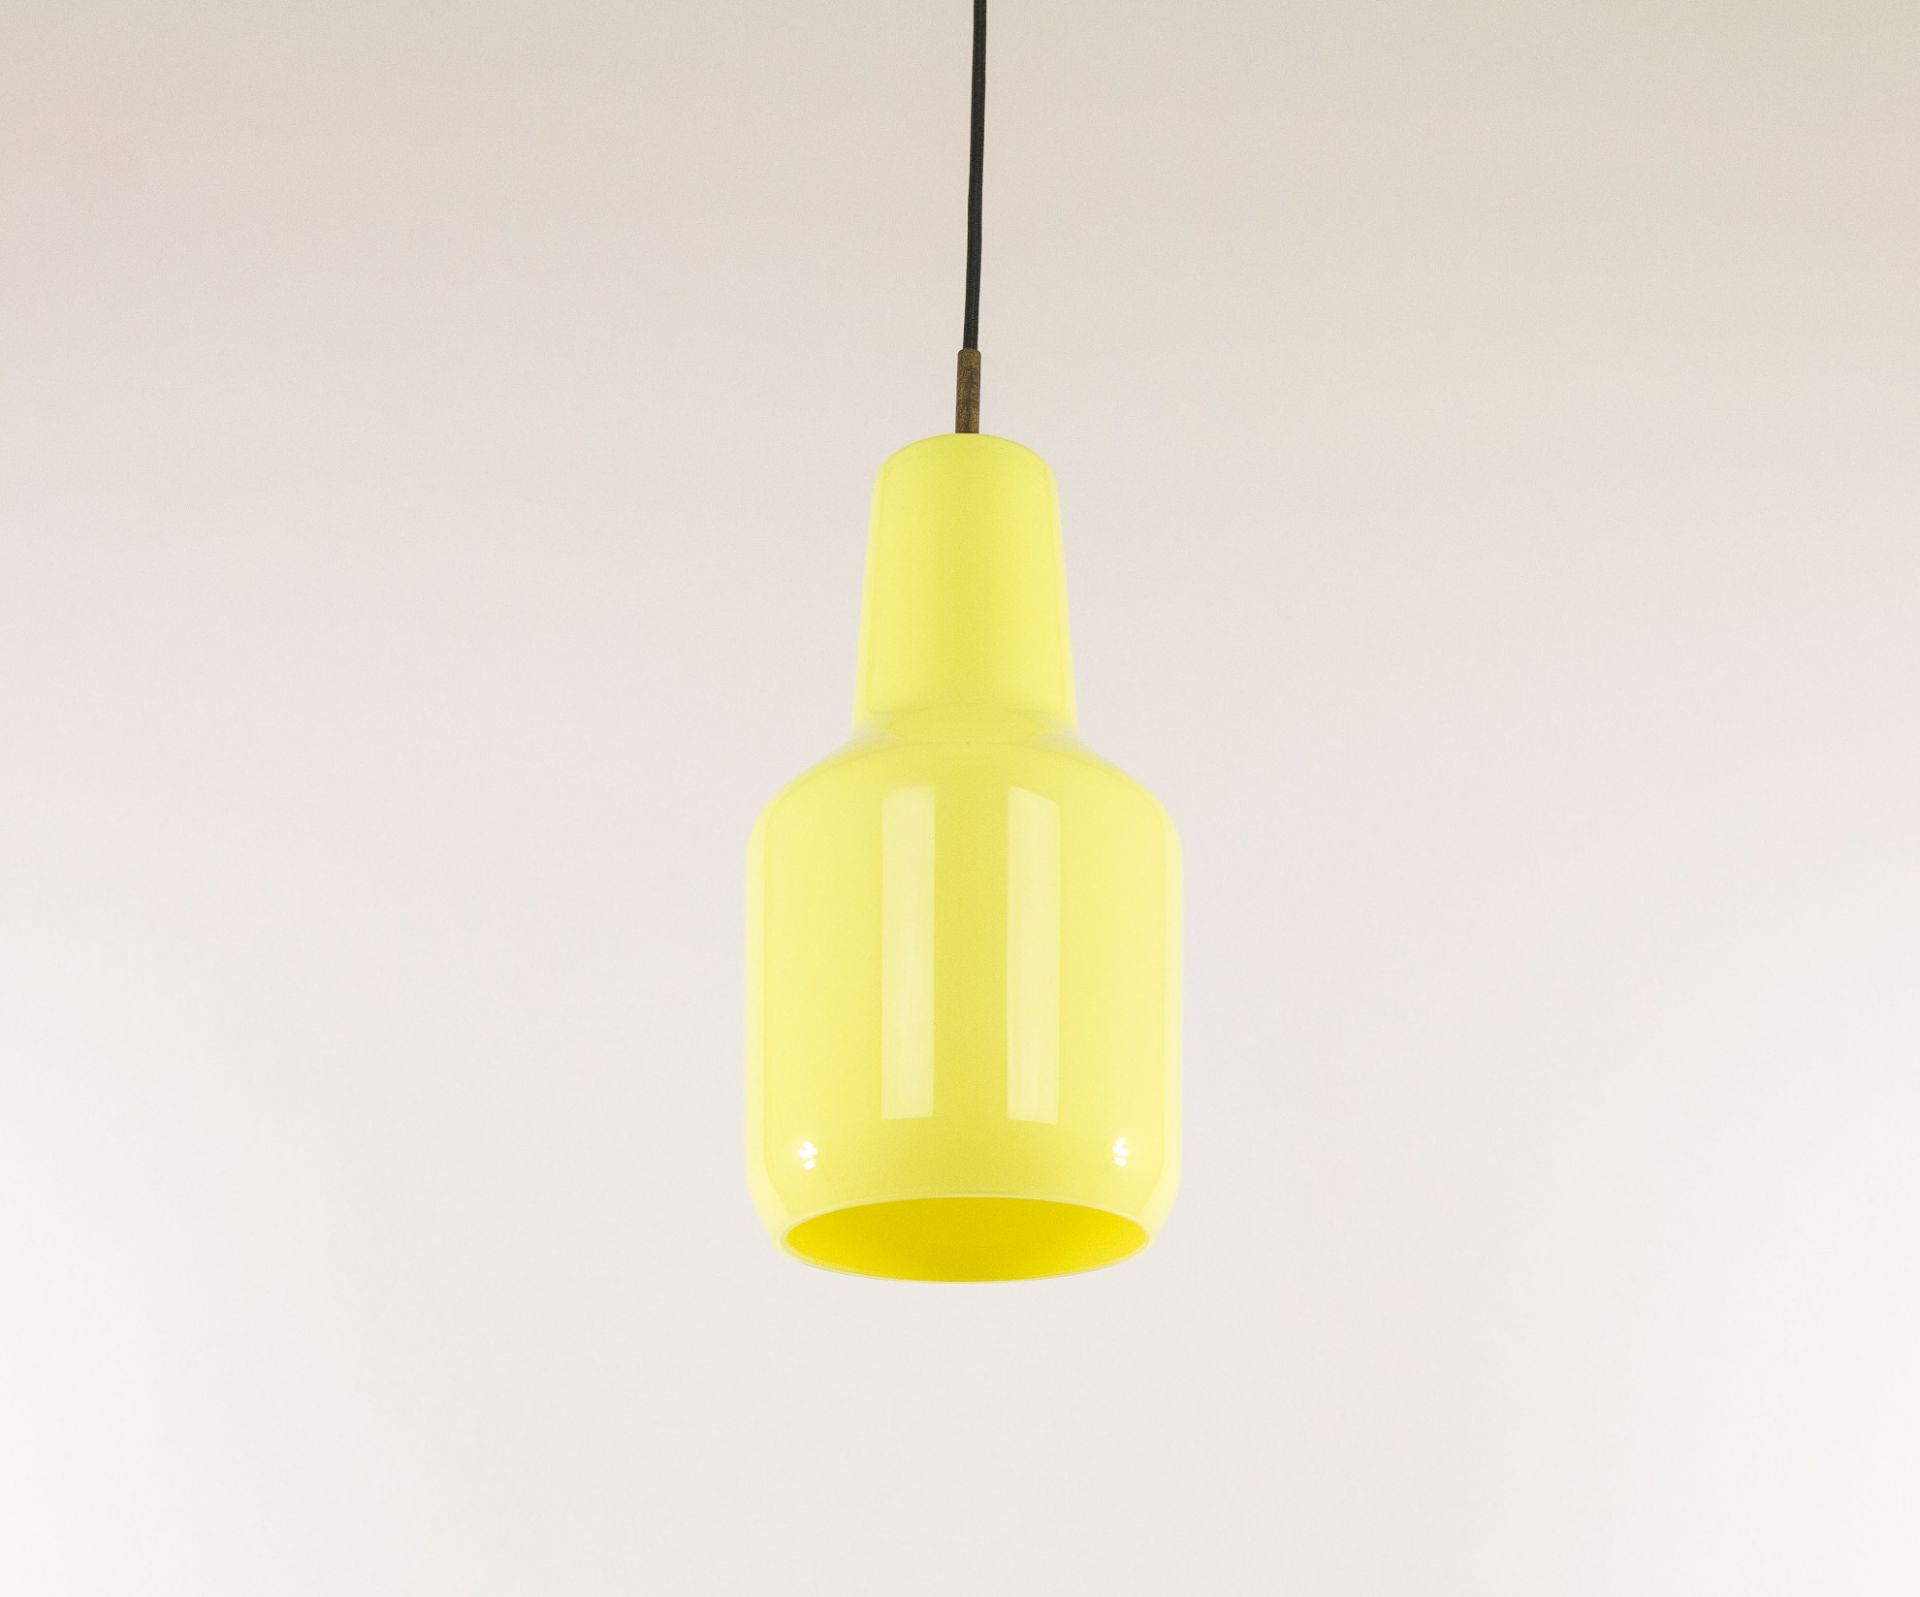 Yellow Murano glass pendant by Massimo Vignelli for Venini, 1950s